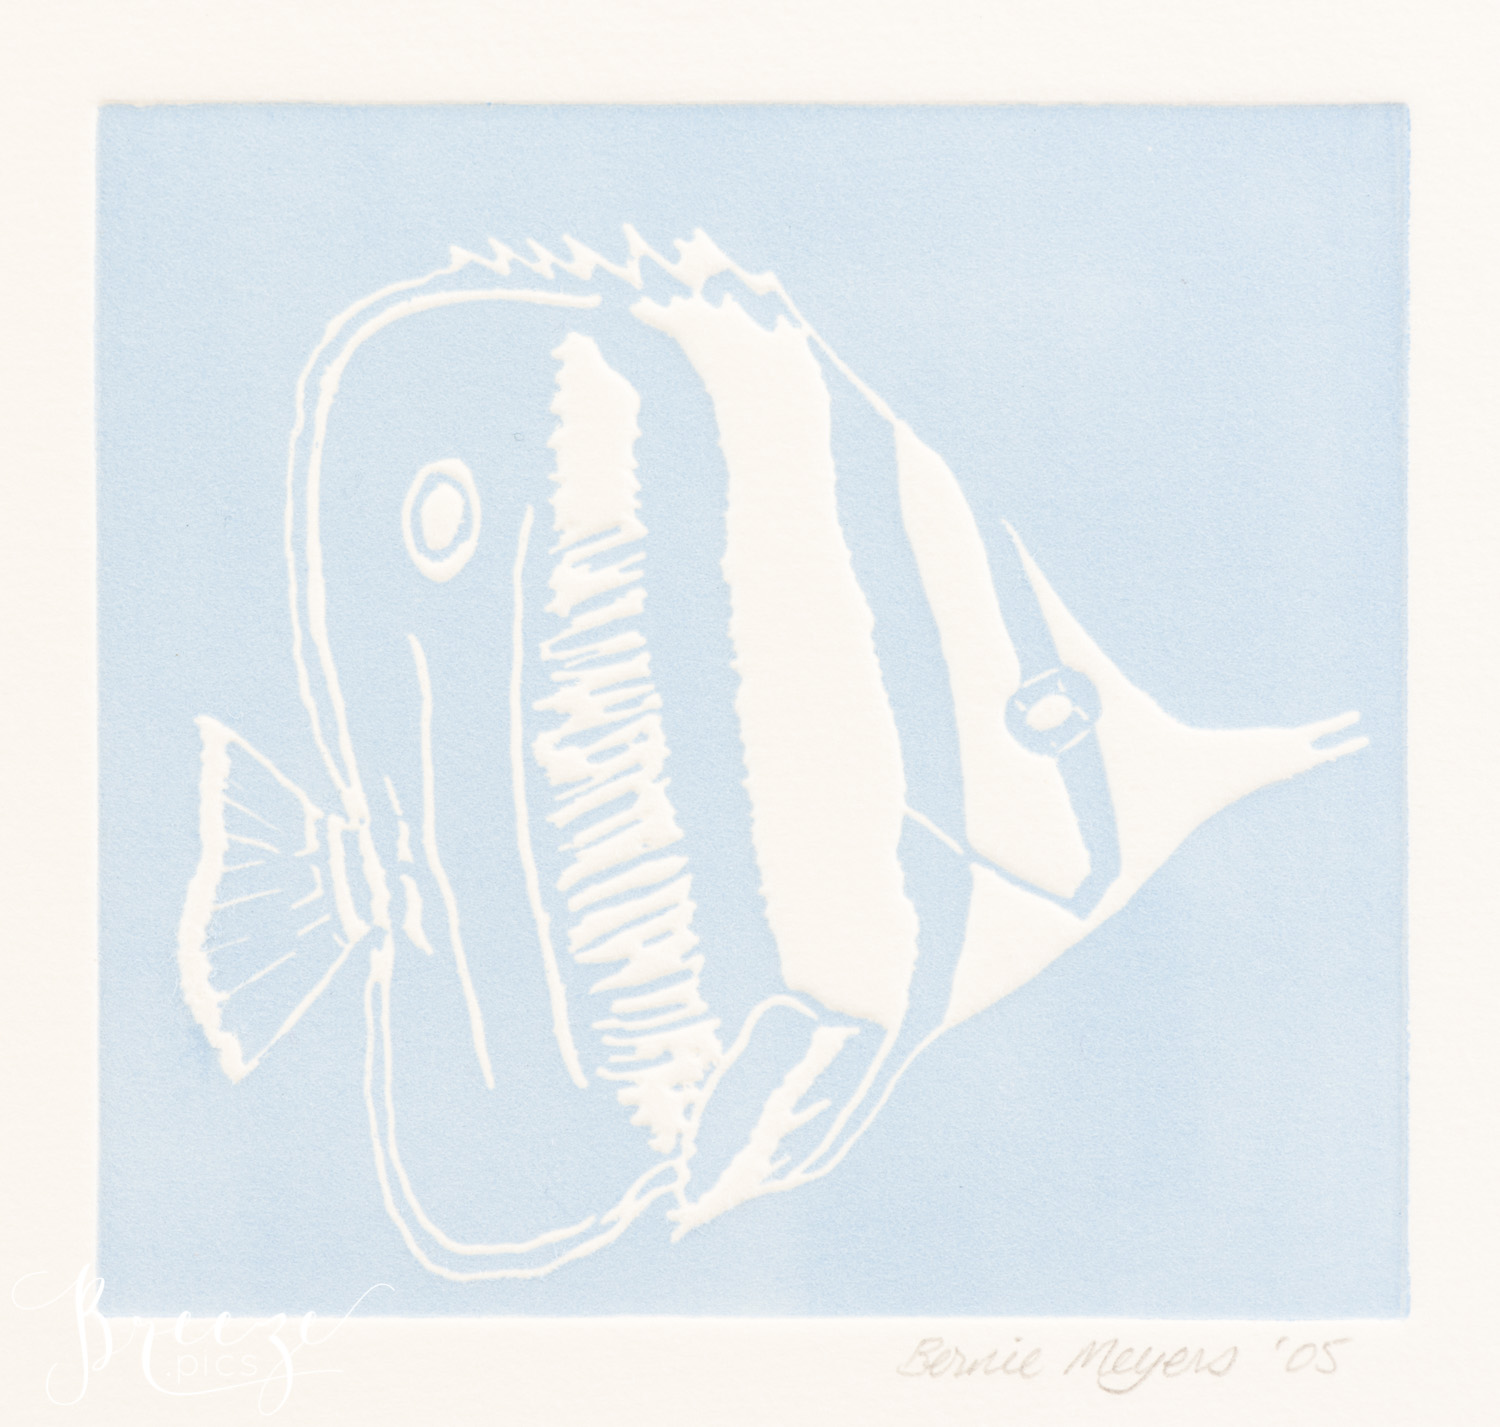 angelfish relief print limited edition fine art print